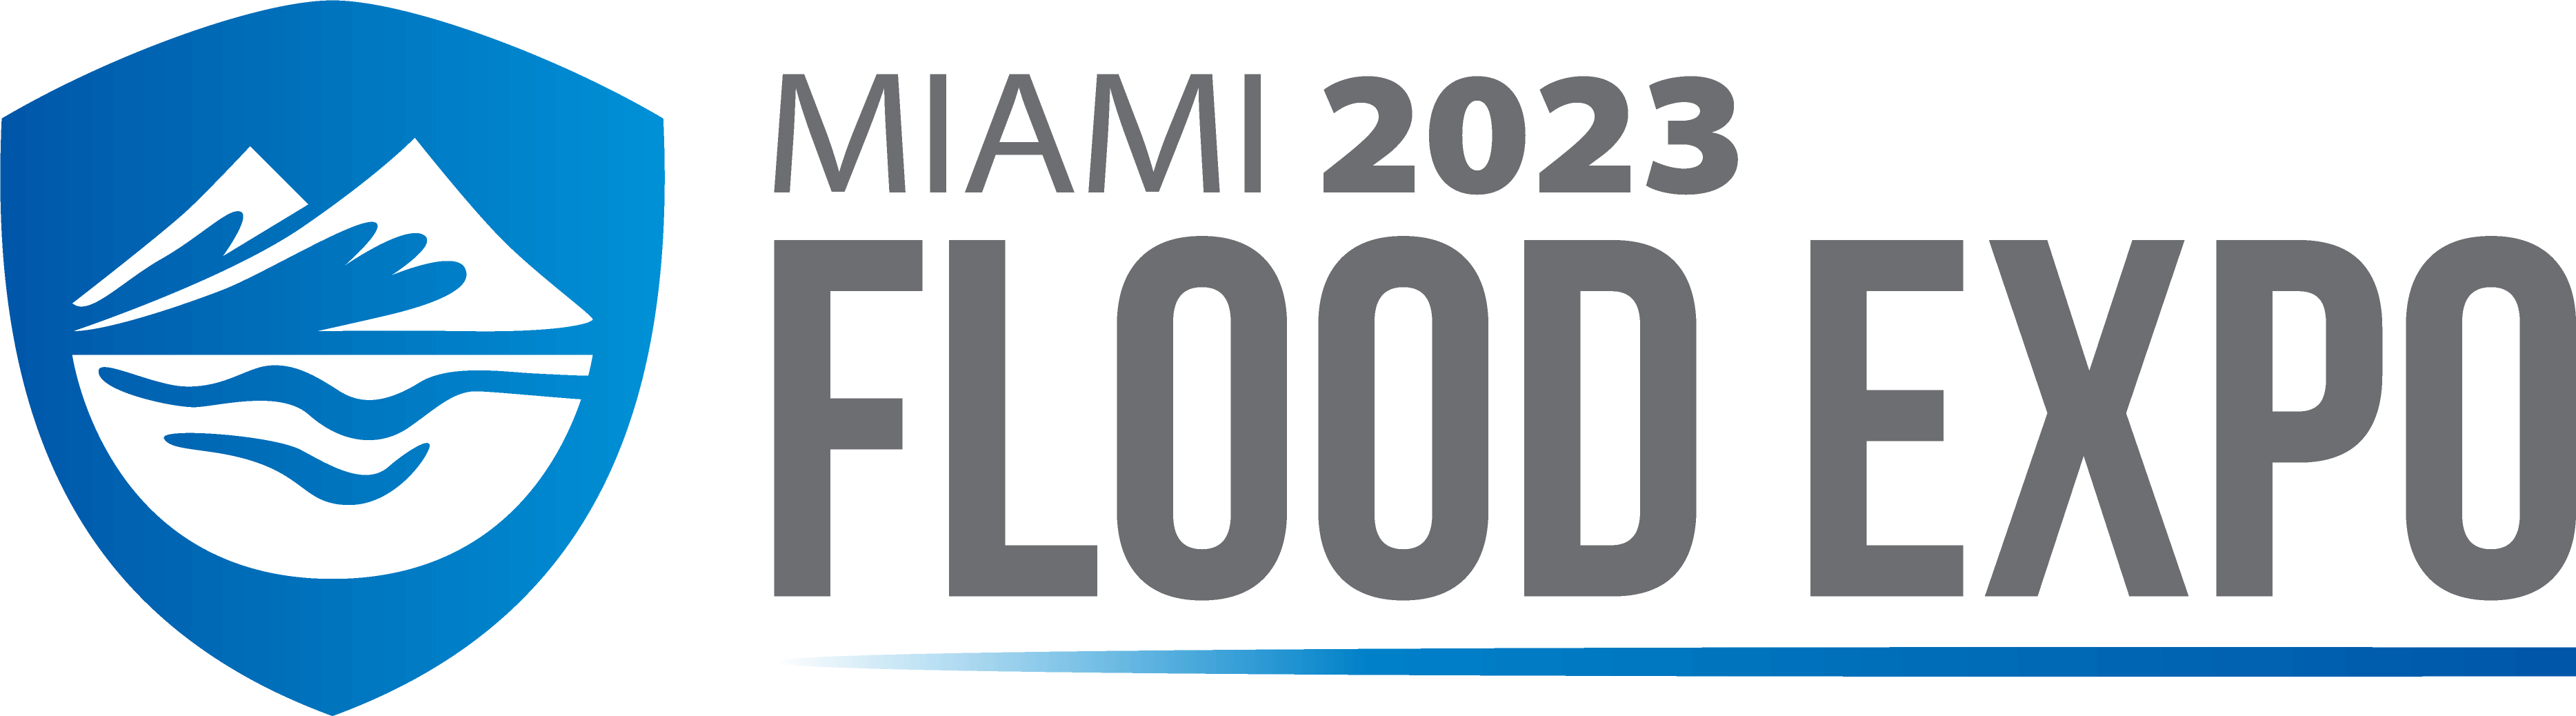 The The Flood Expo Miami logo